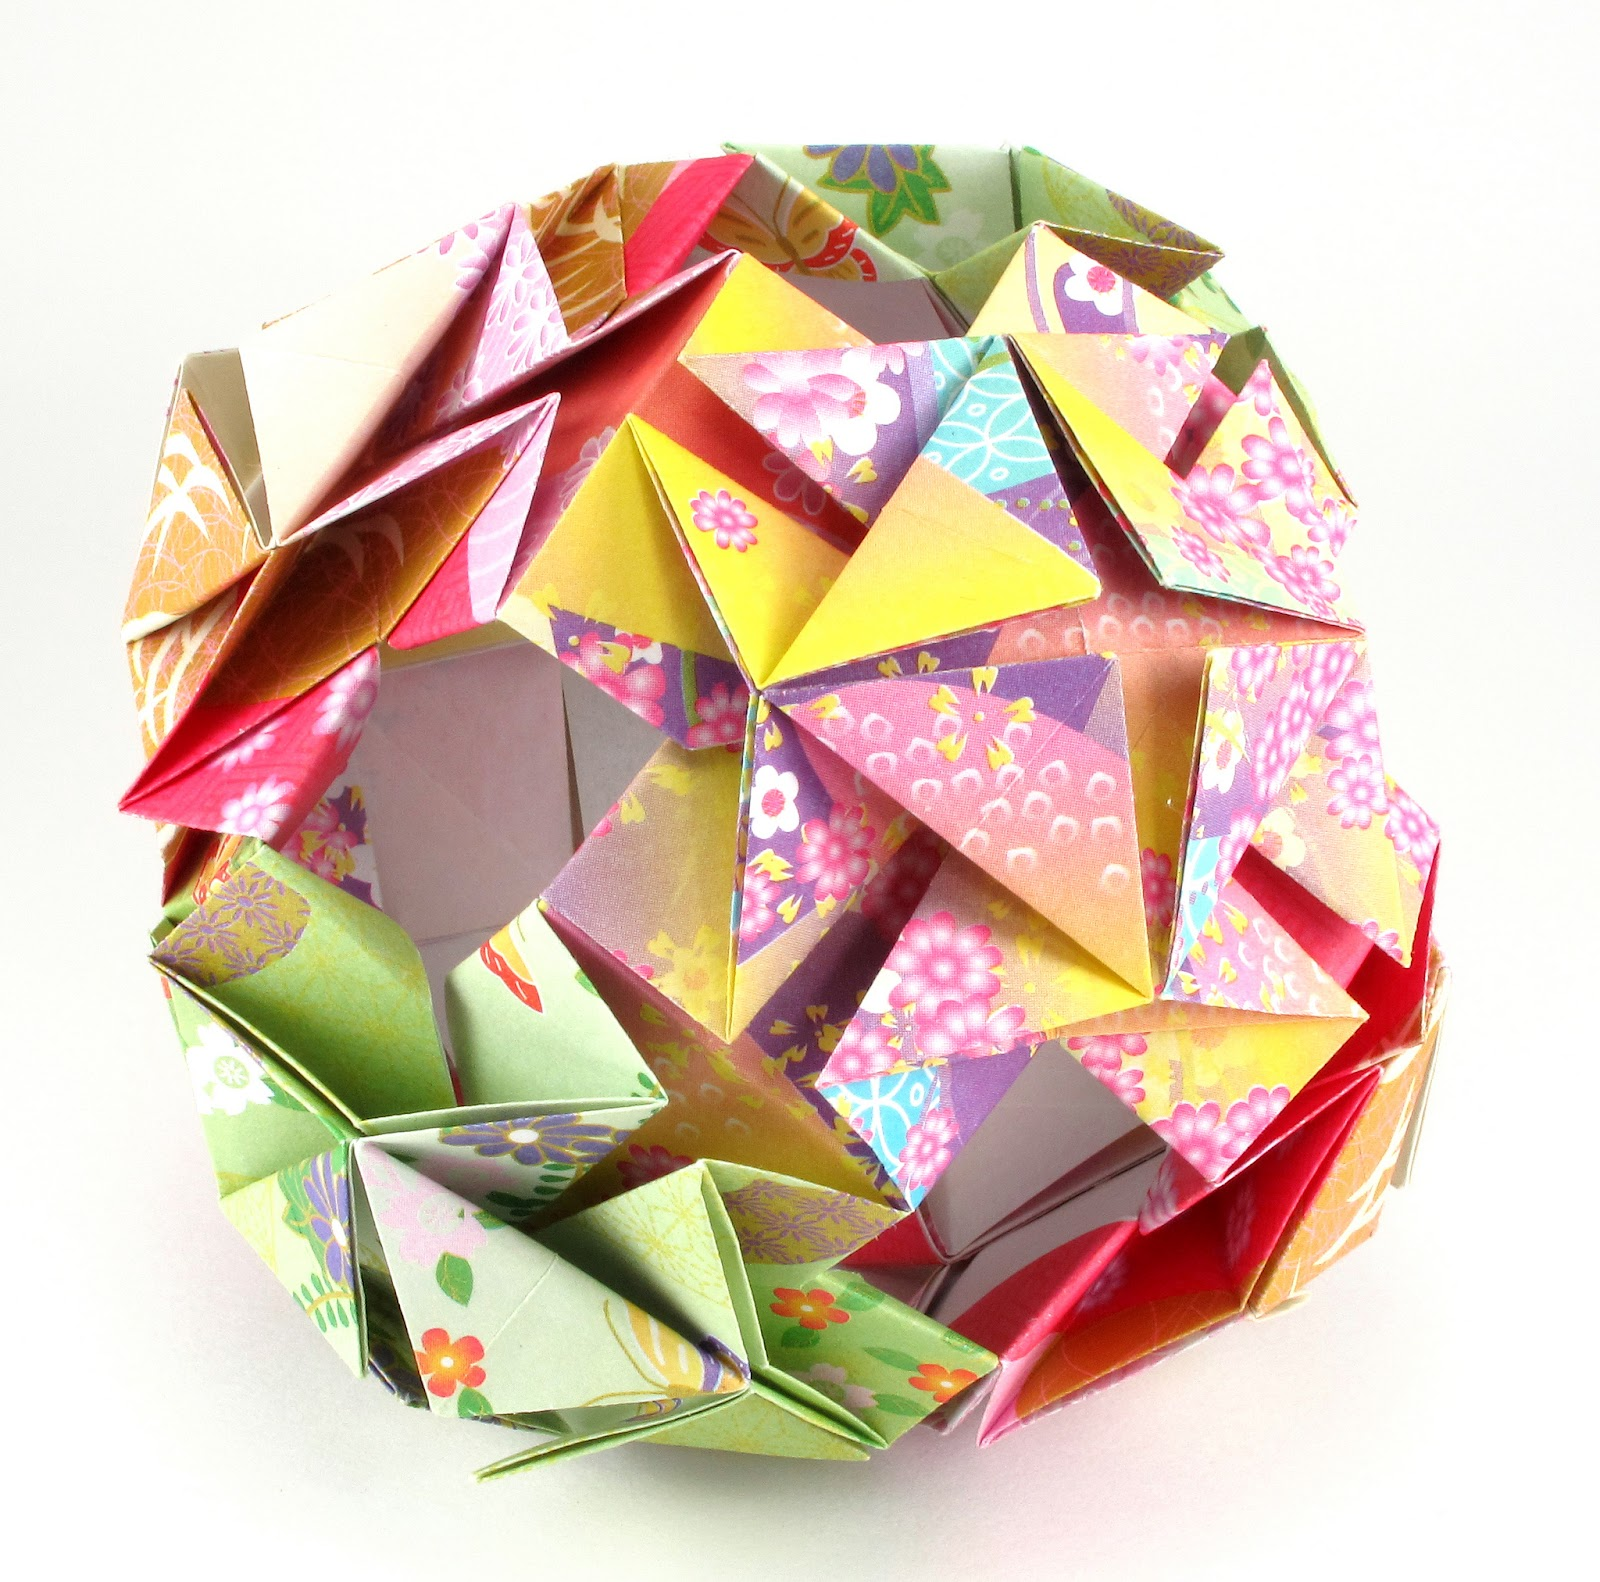 Bead Origami Origami Interlude Flower Cube